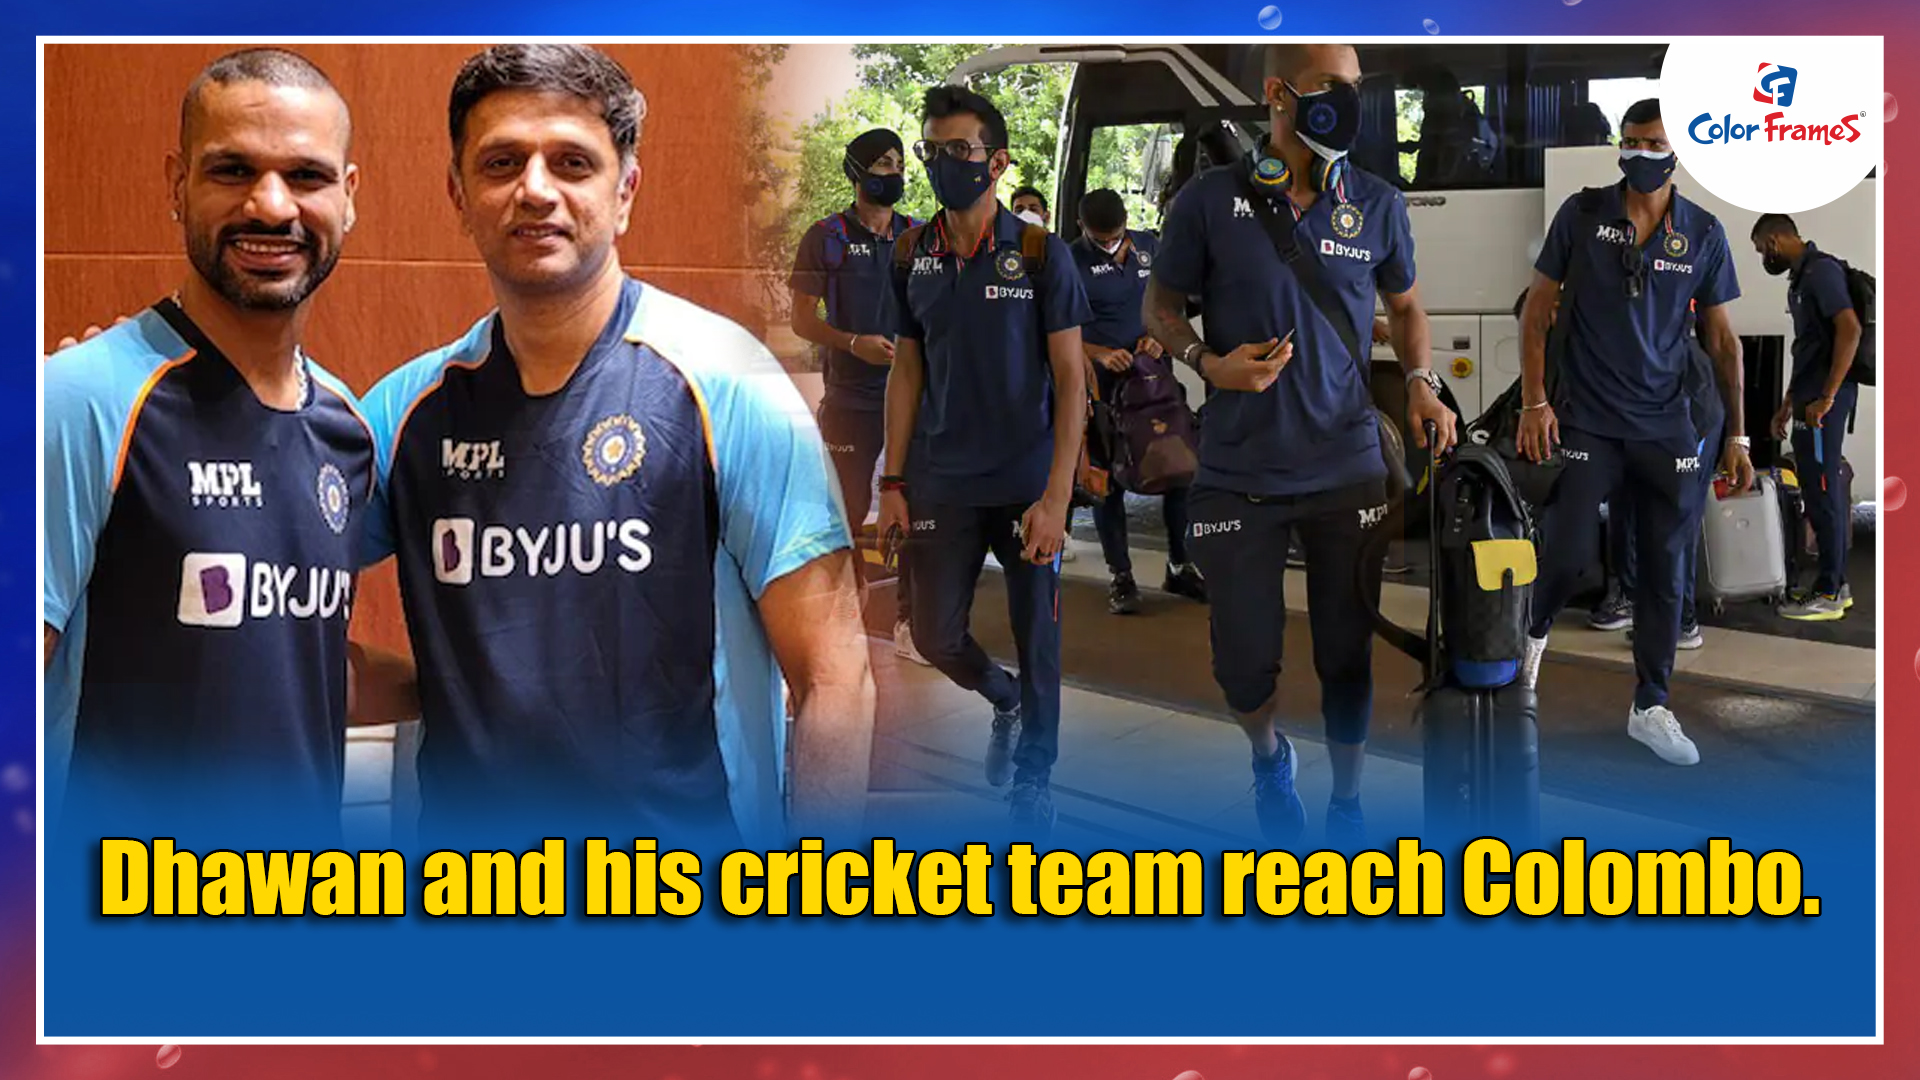 Dhawan and his cricket team reach Colombo.